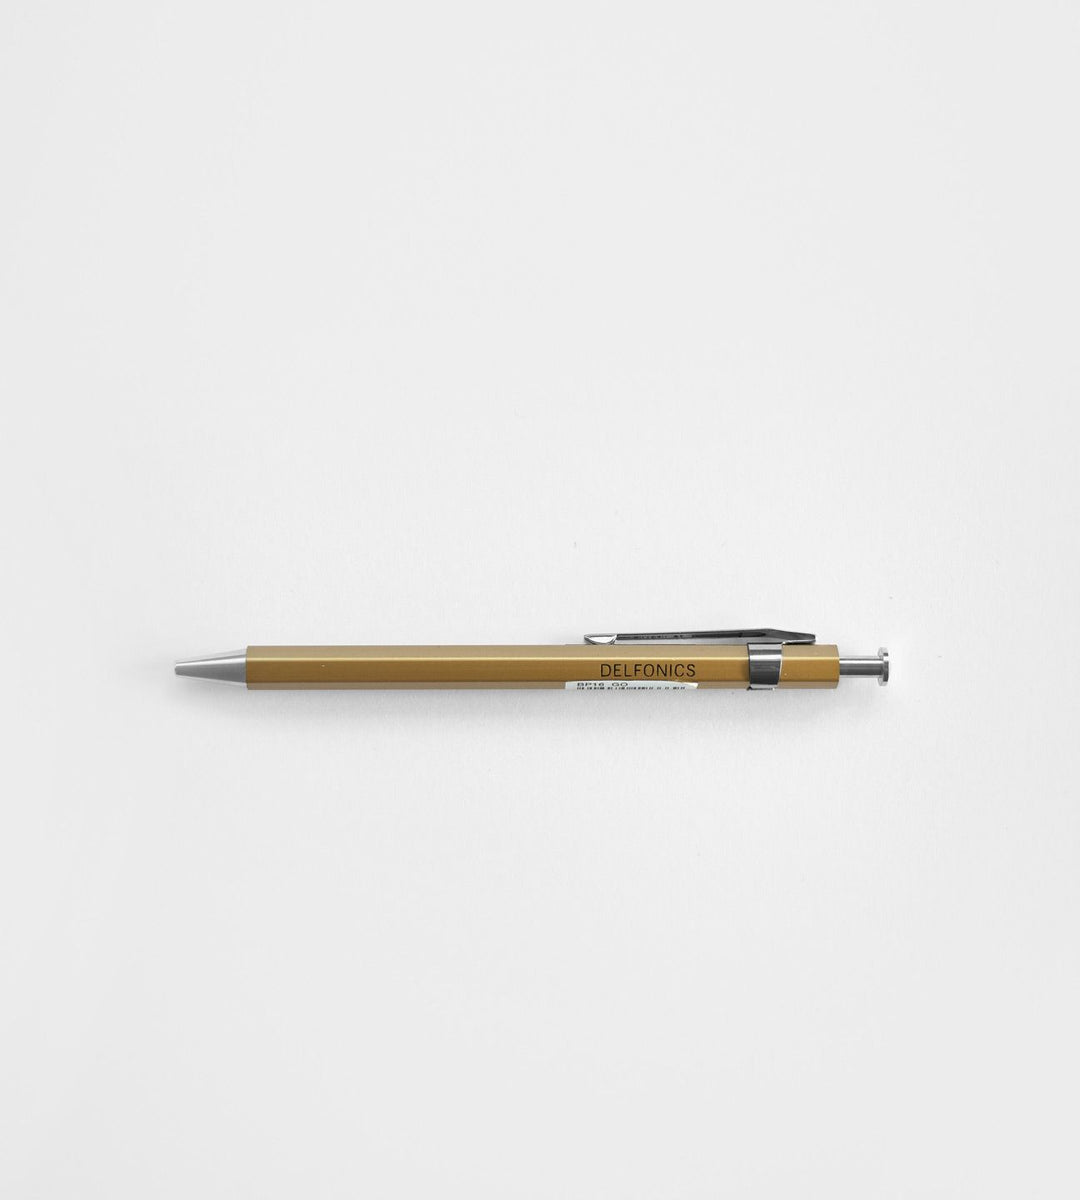 Delfonics Mini Pen | Gold